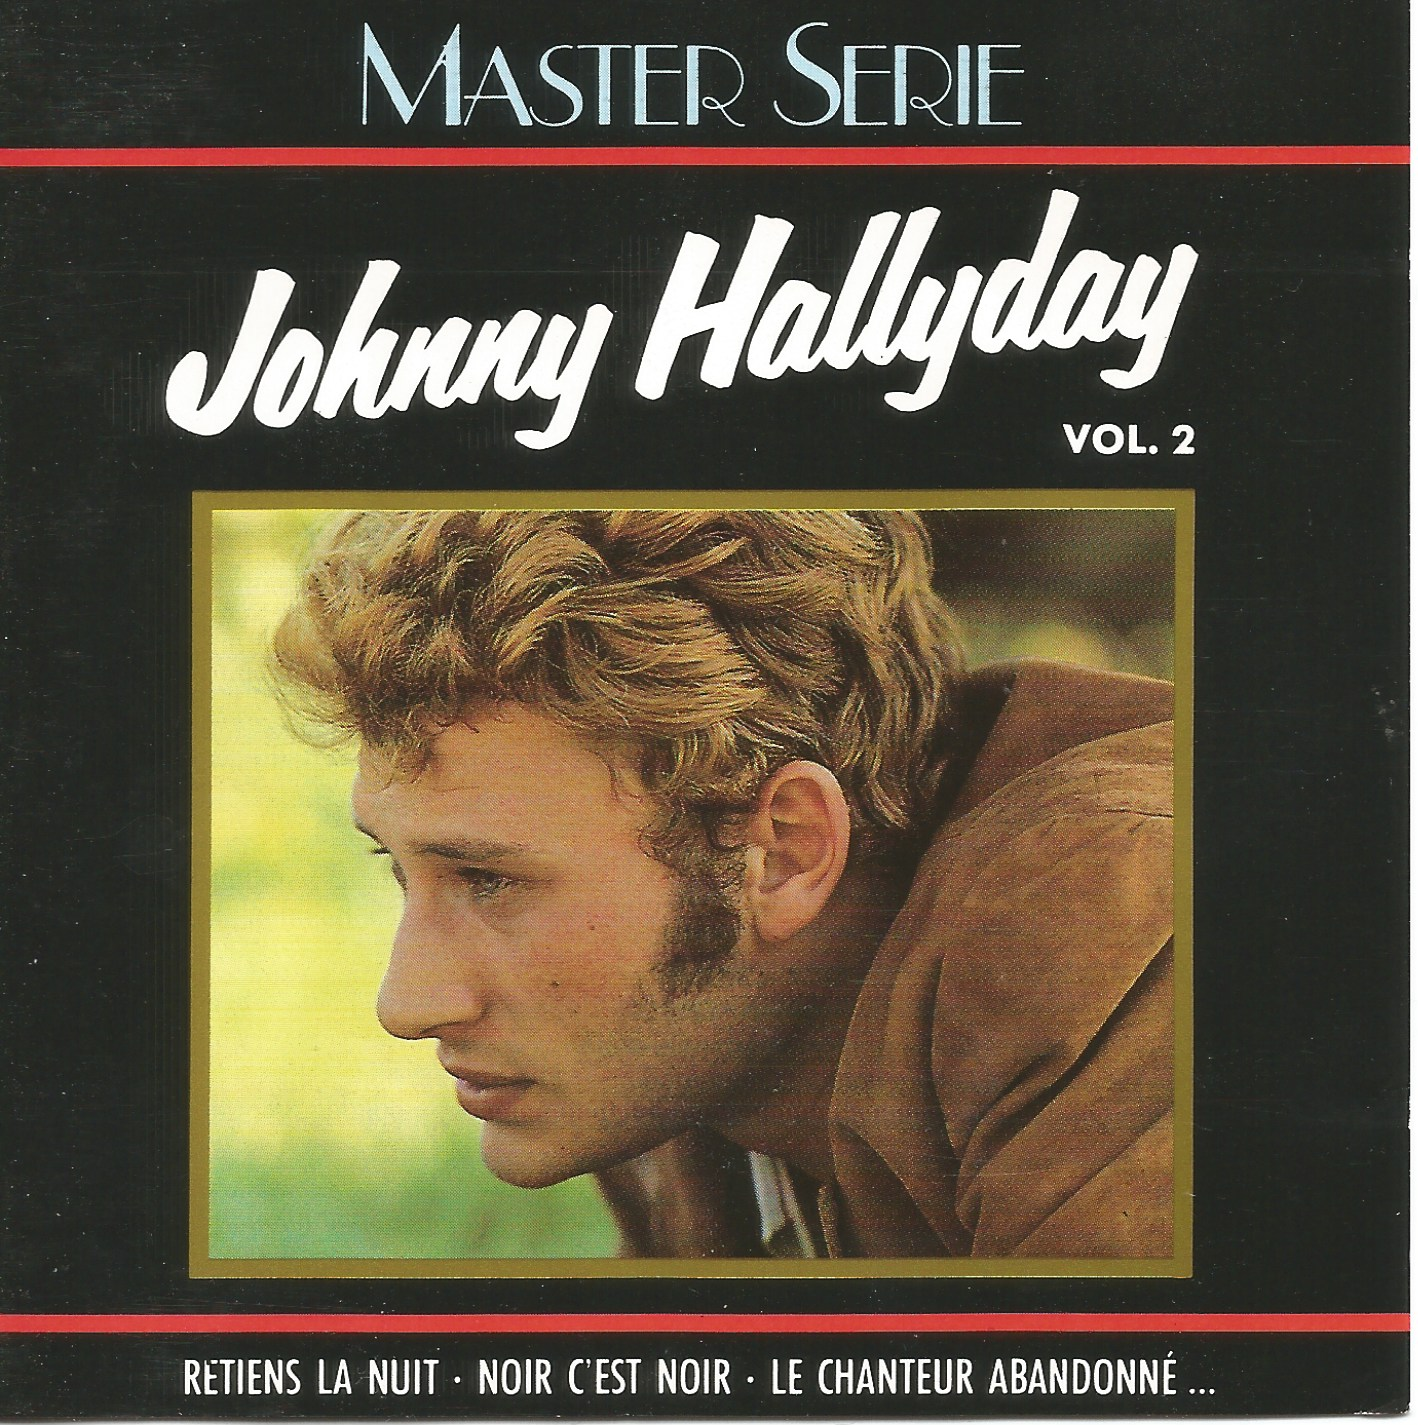 jaquettes4/Johnny-Hallyday_Master-Serie_vol-2.jpeg